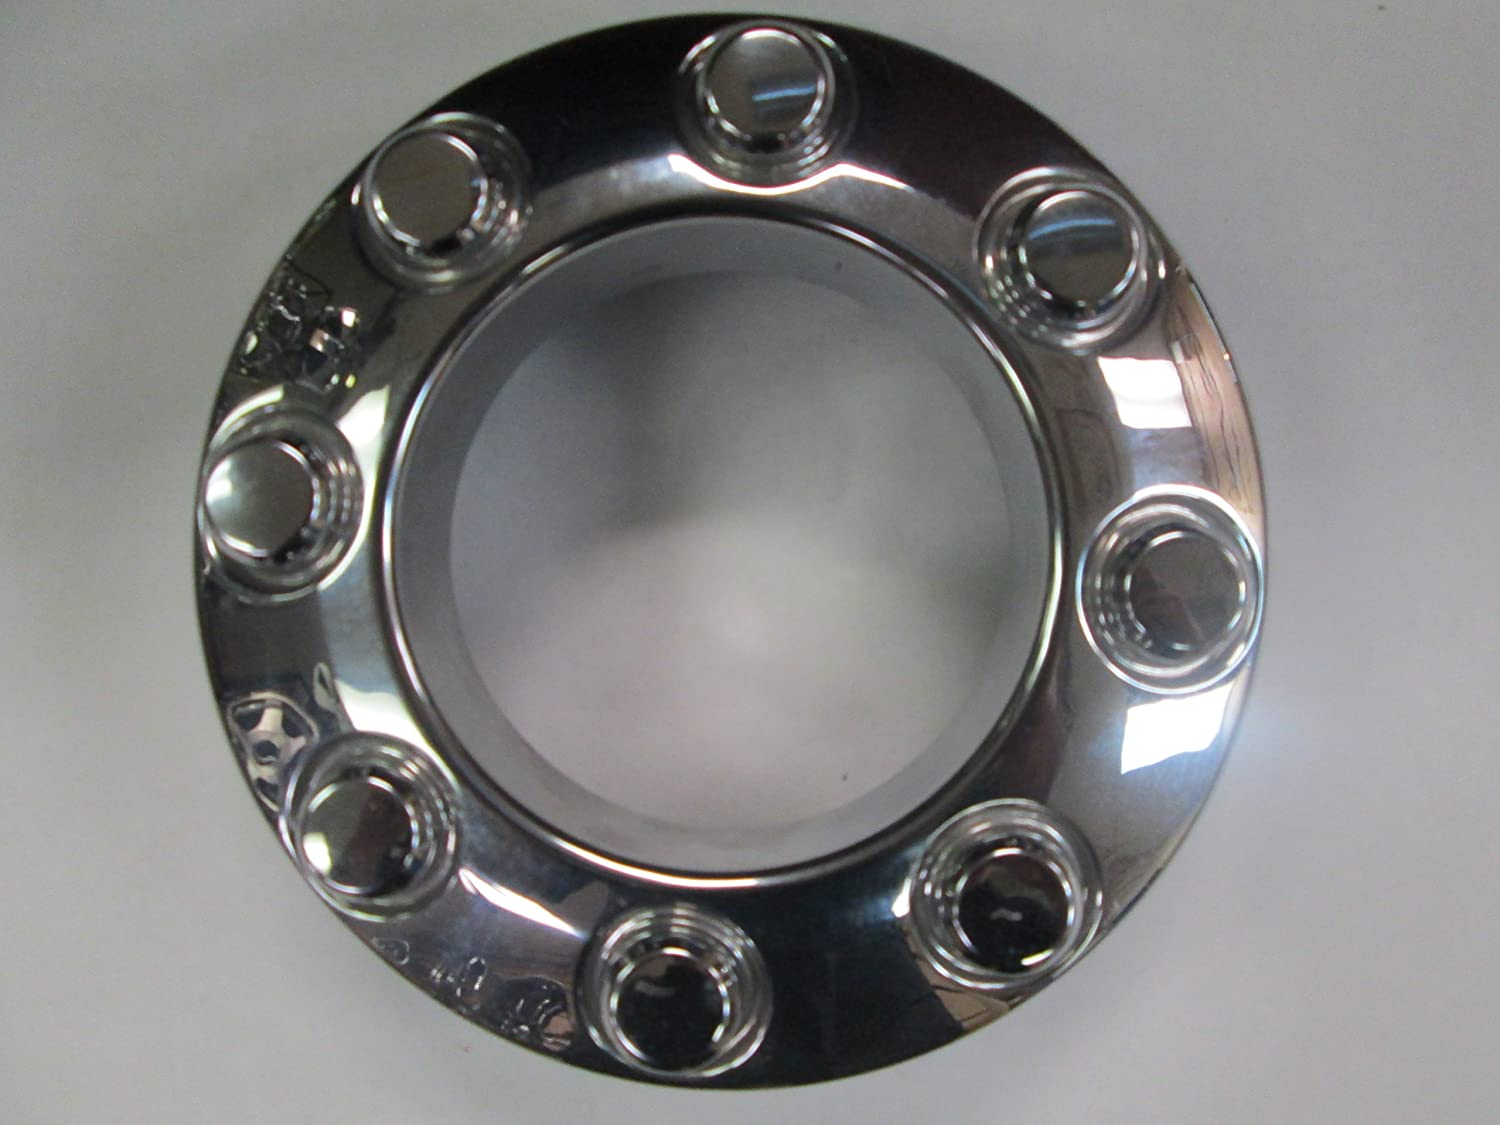 2013-2014 Ford F-350 4x4 Center Cap Hubcap Fits Front wheel For Dually Wheel 4wd